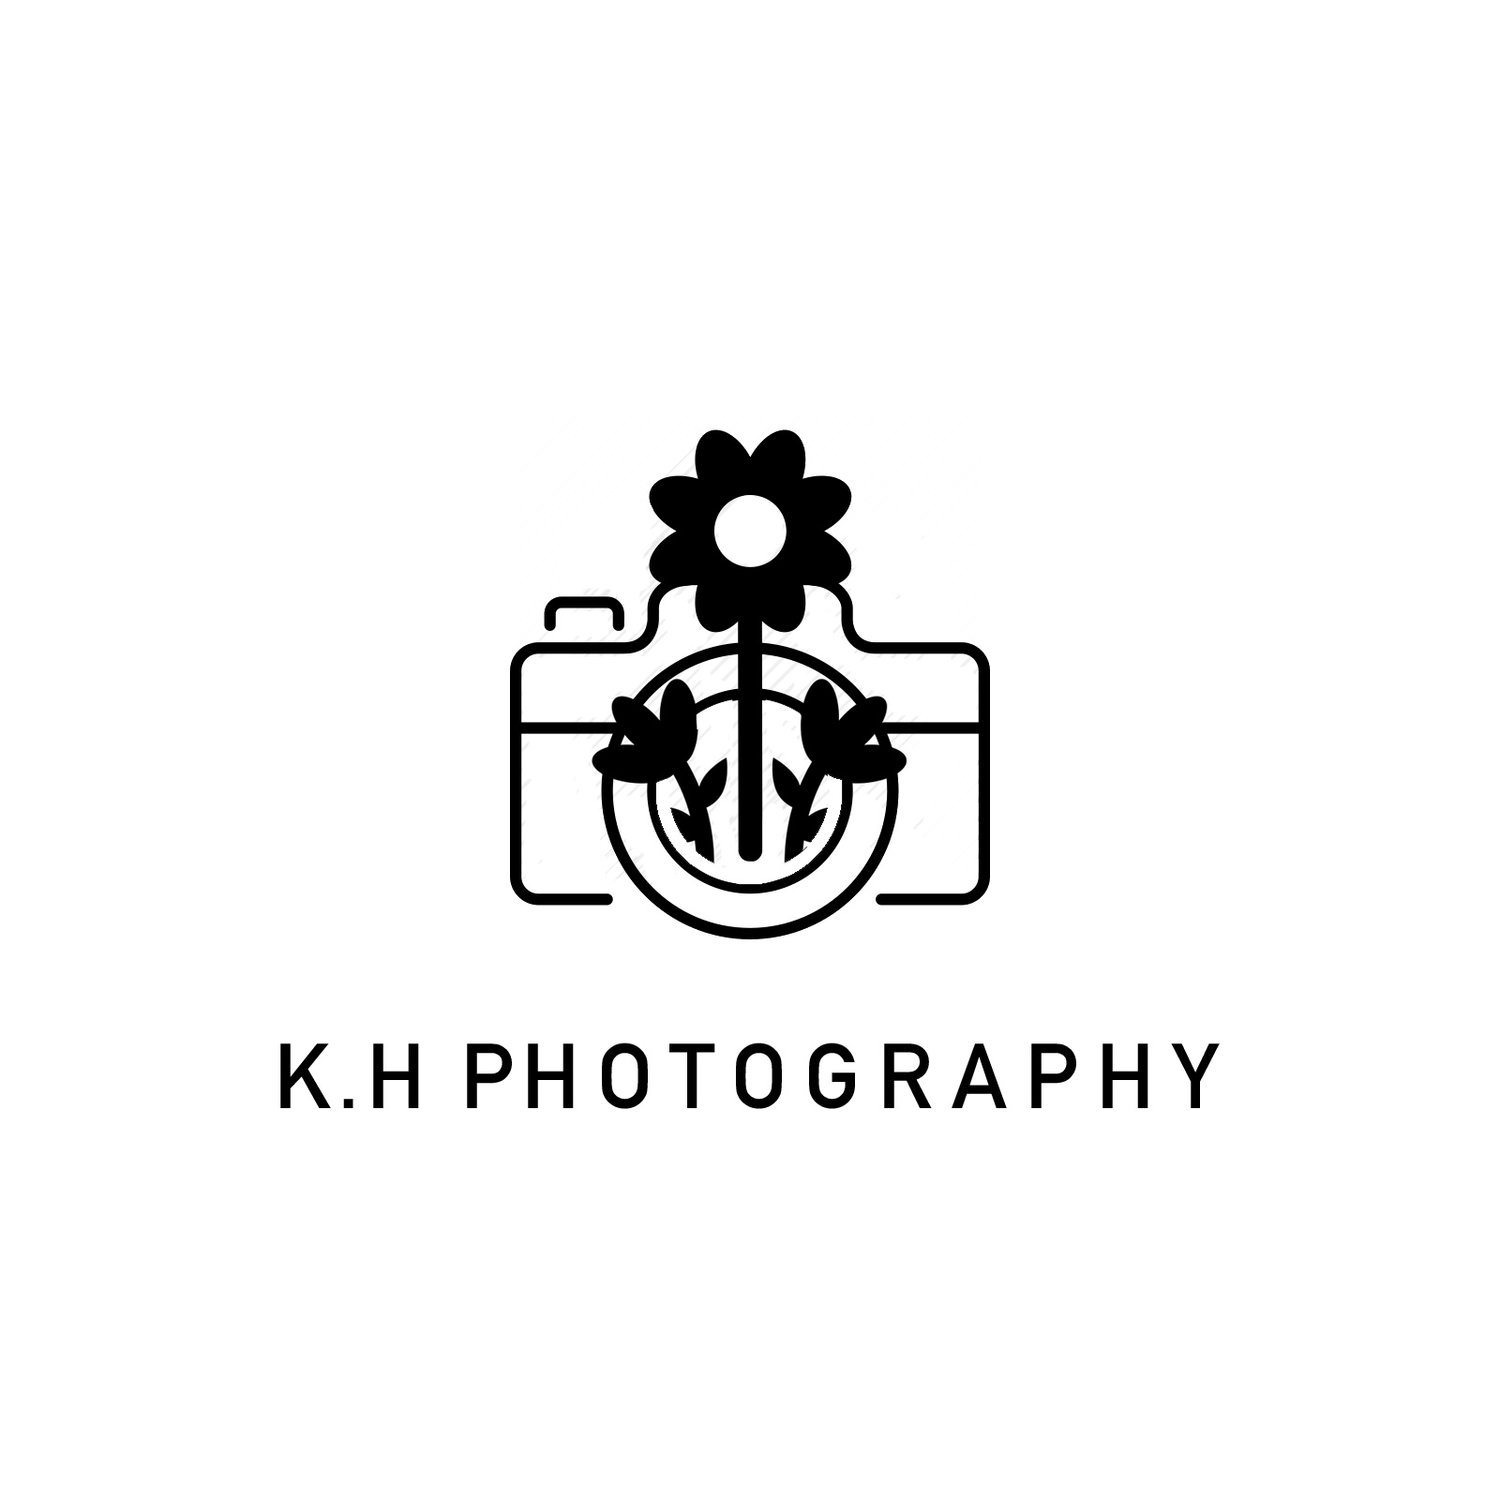 K.H. Photography